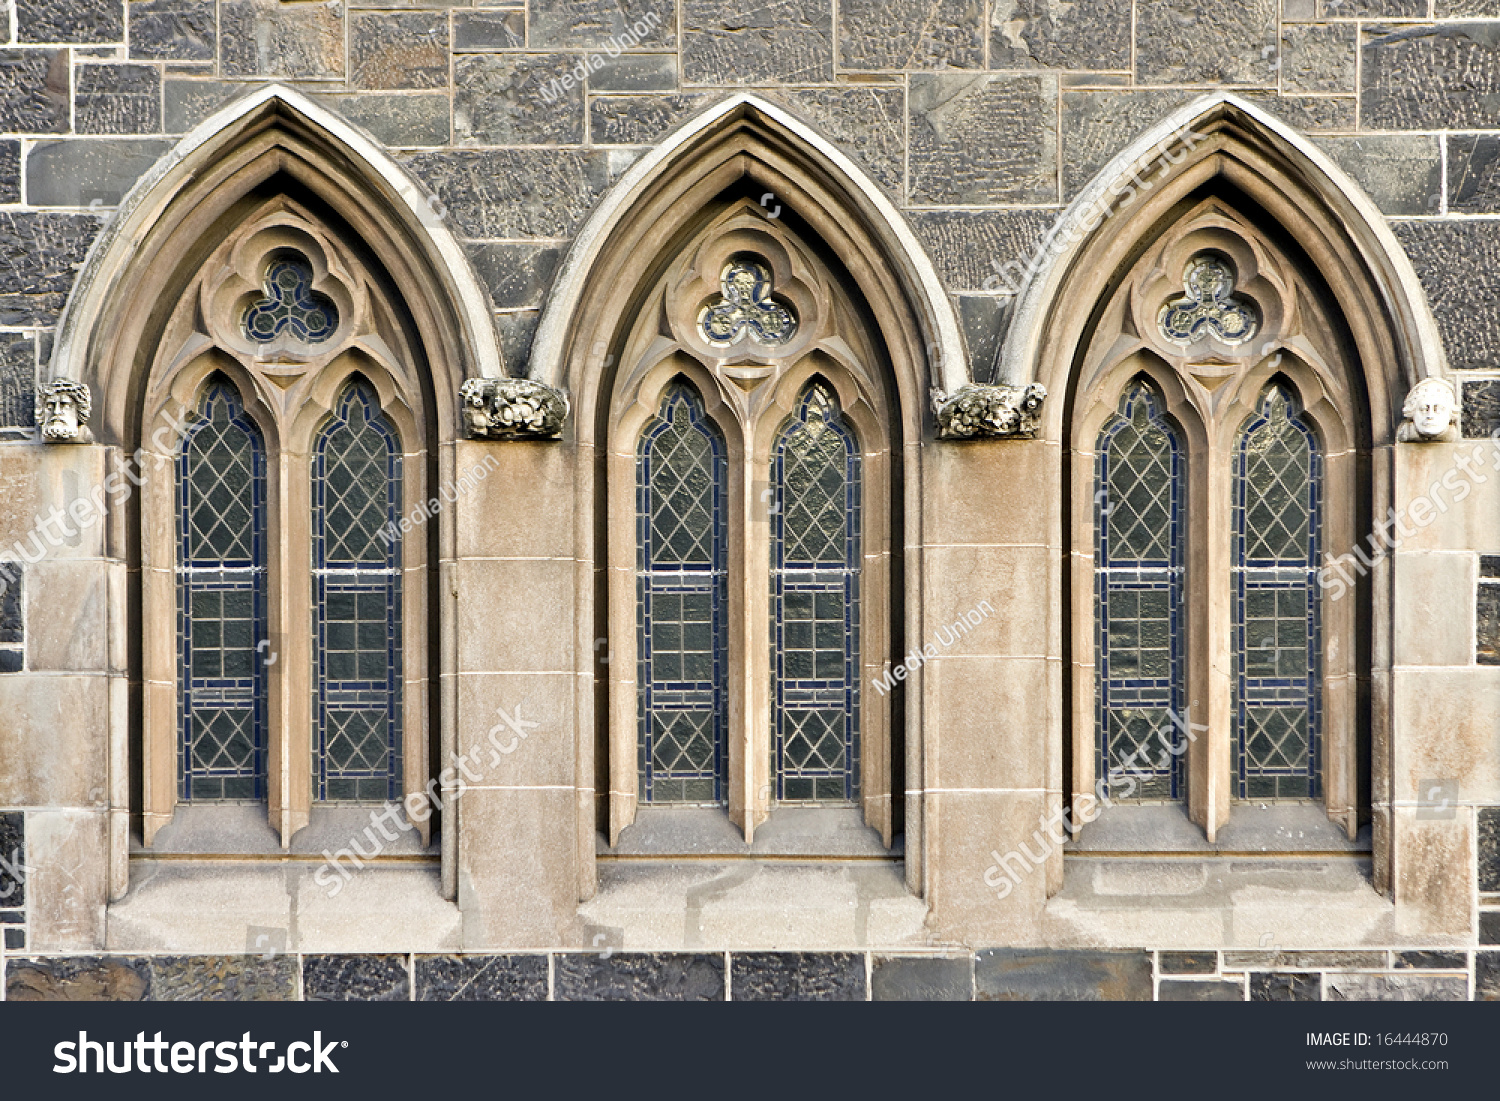 Exterior trefoil church windows landscape exterior stock photo 16444870 shutterstock for Exterior glass doors for churches